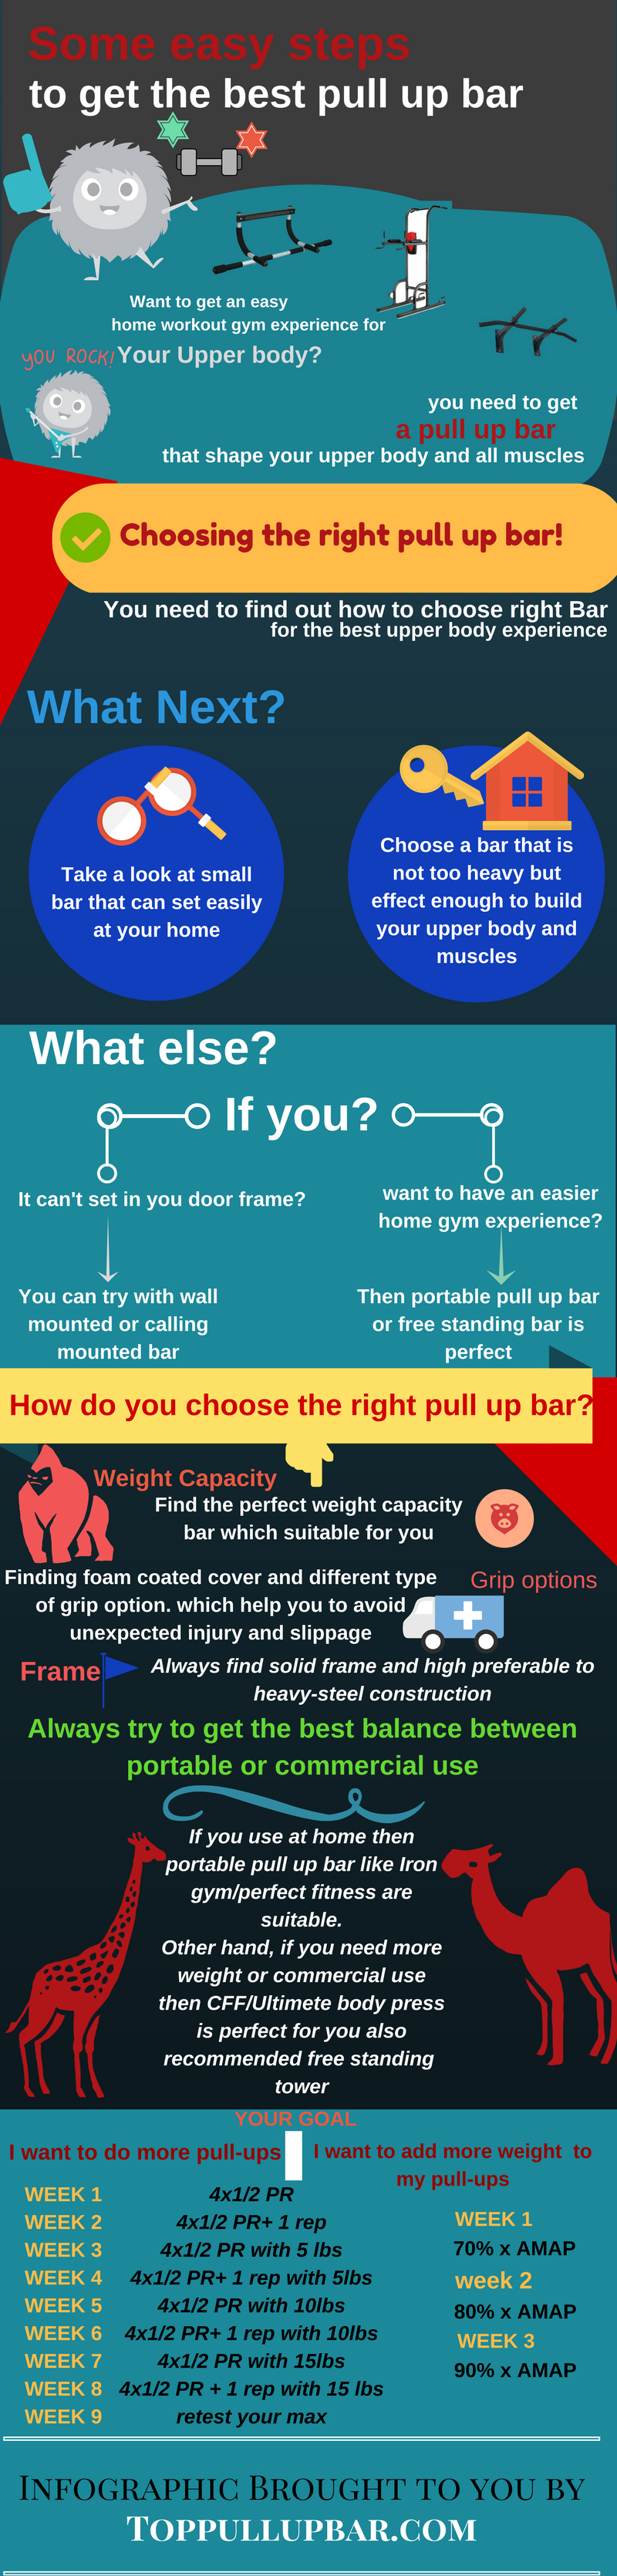 pull up bar info graphic